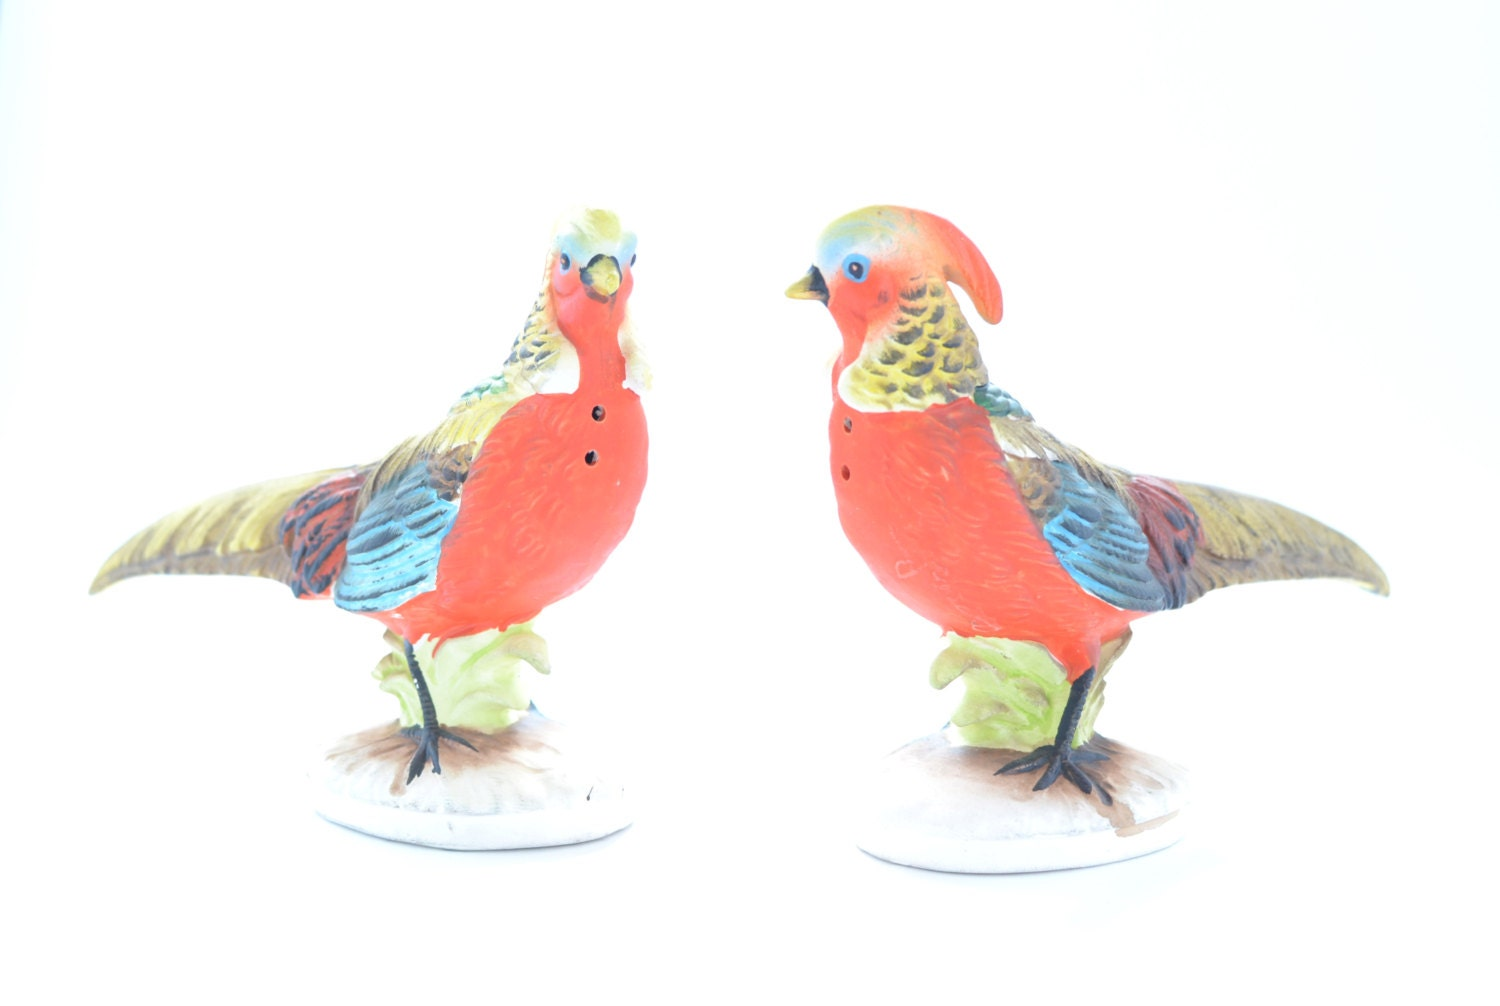 Vintage quail salt and pepper shakers large colorful birds Colorful salt and pepper shakers